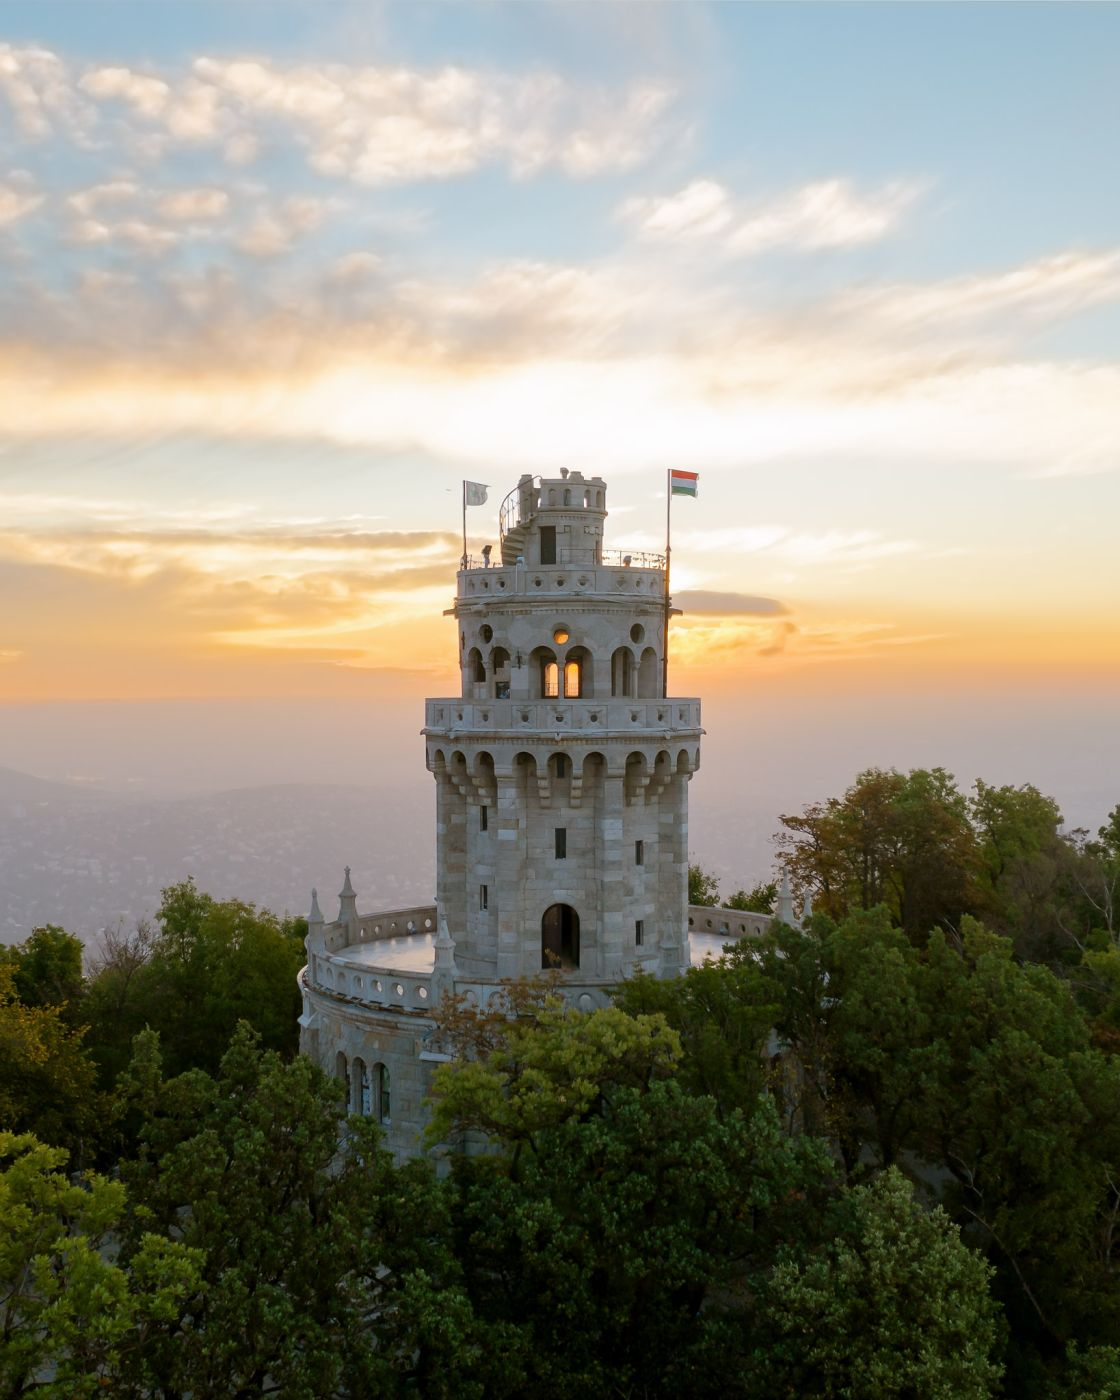 Erzsebet Lookout tower, Hungary